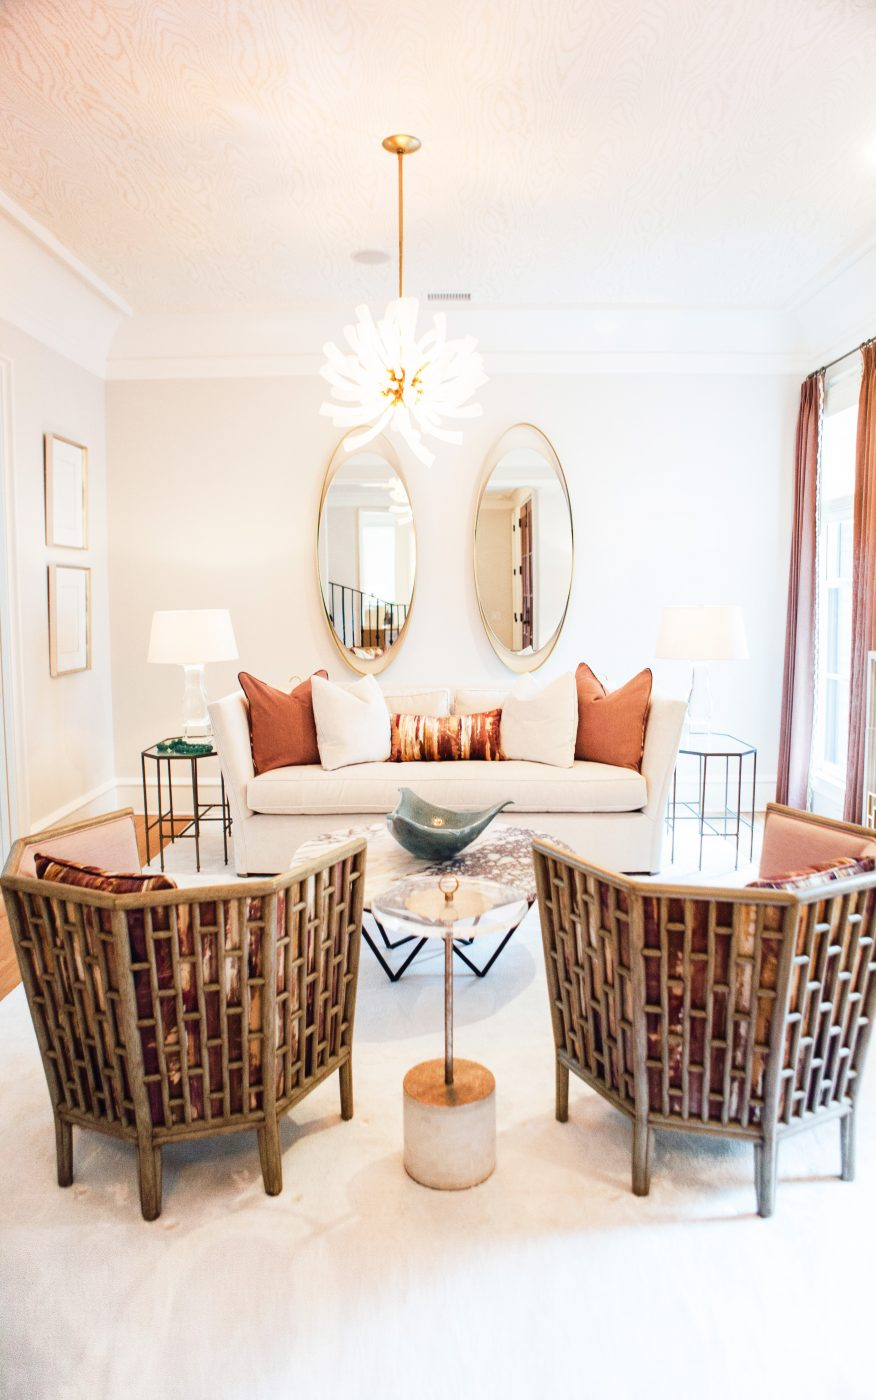 10 Charlotte Interior Designers To Inspire Your Next Project Qc Exclusive